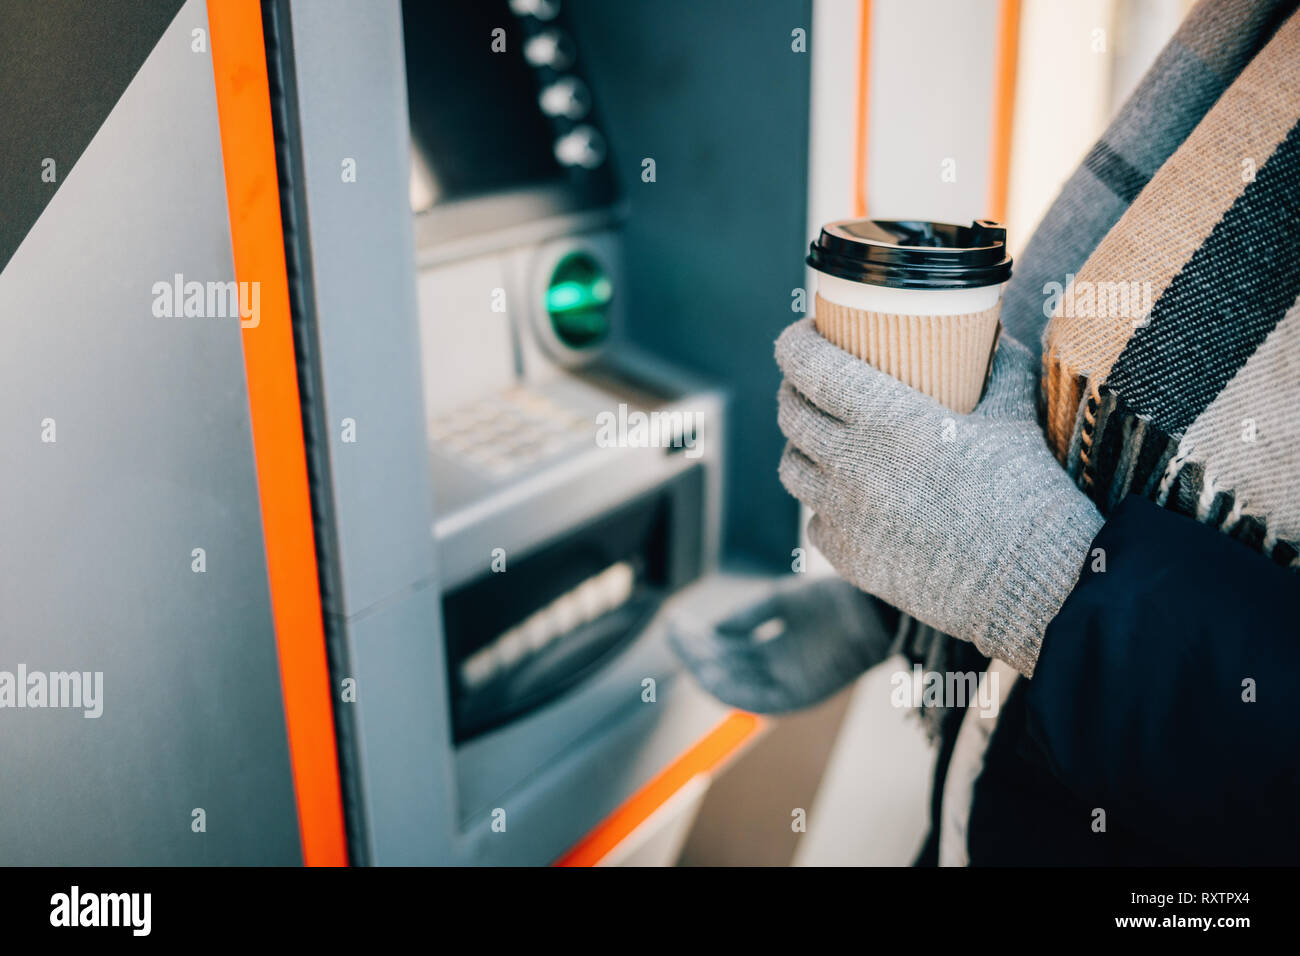 Close-up of unrecognizable young woman withdrawing cash using ATM on city street in winter day. - Stock Image